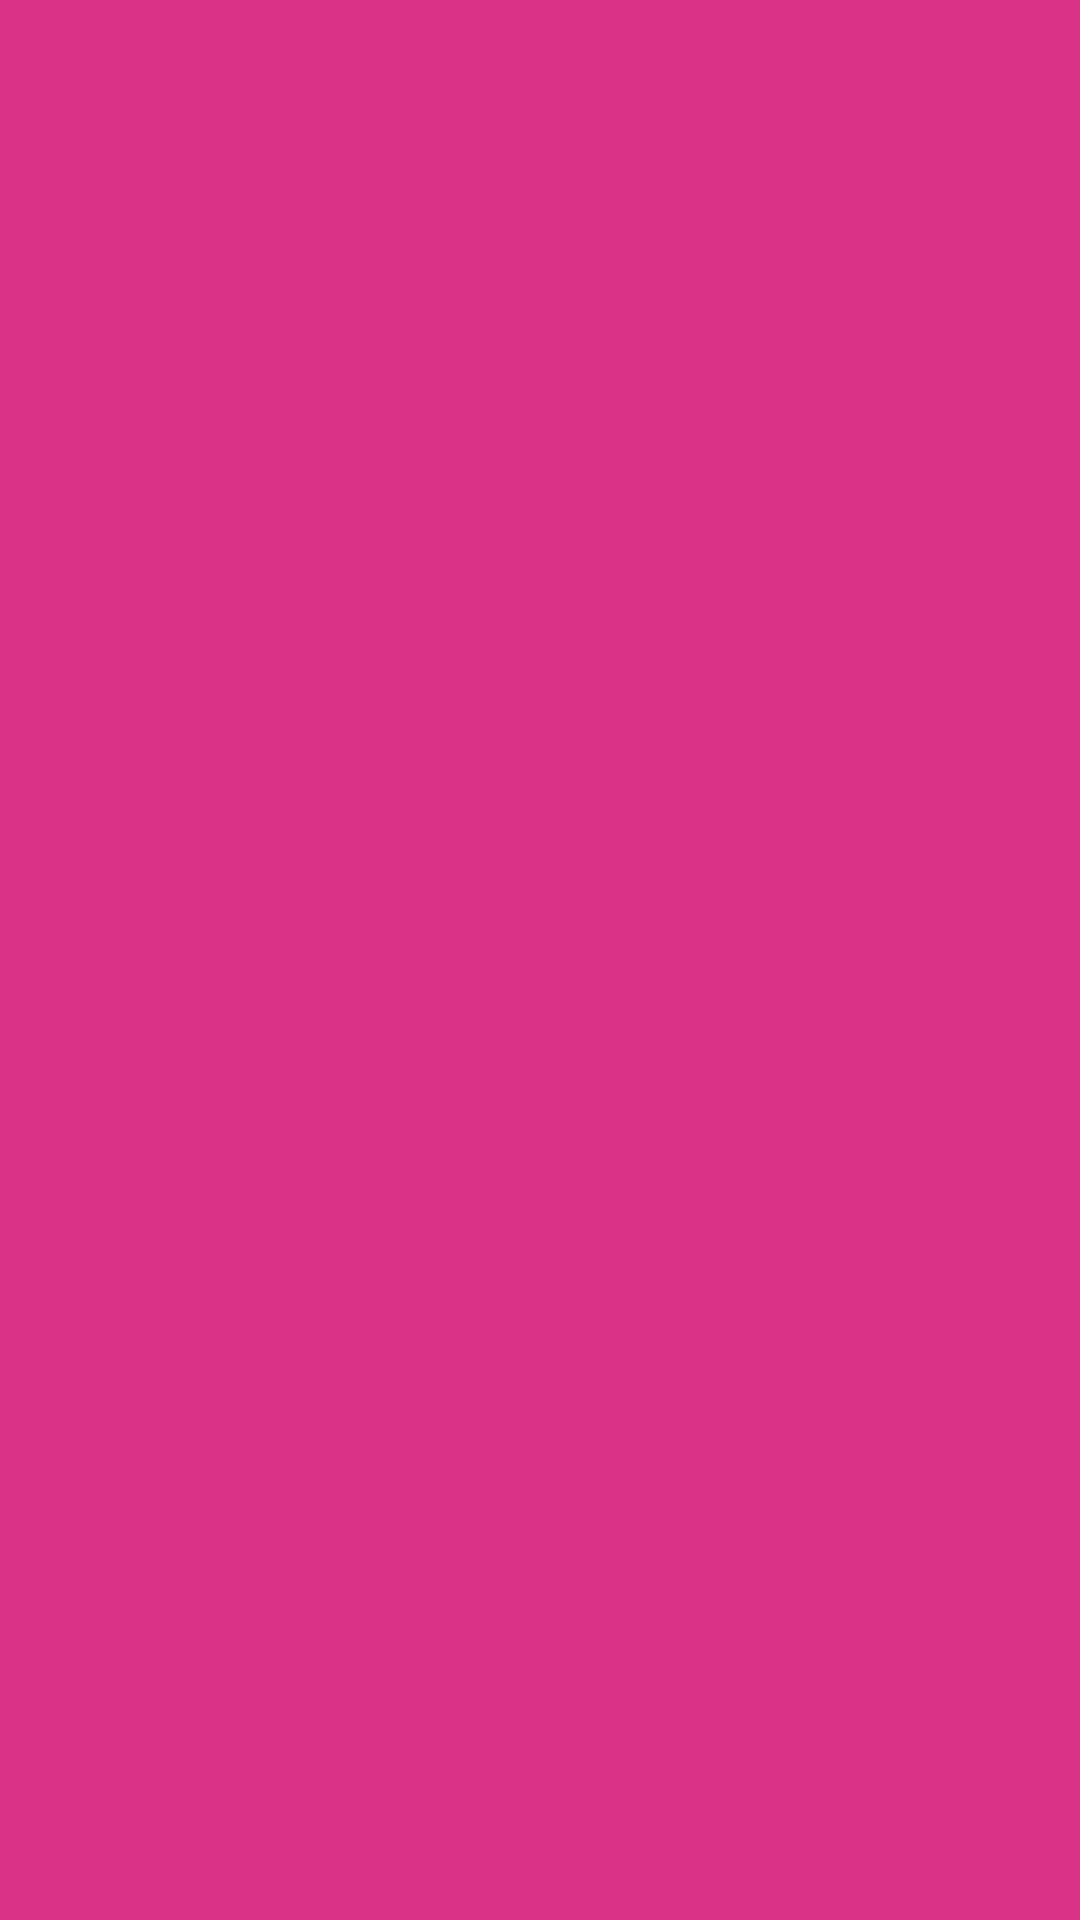 1080x1920 Deep Cerise Solid Color Background